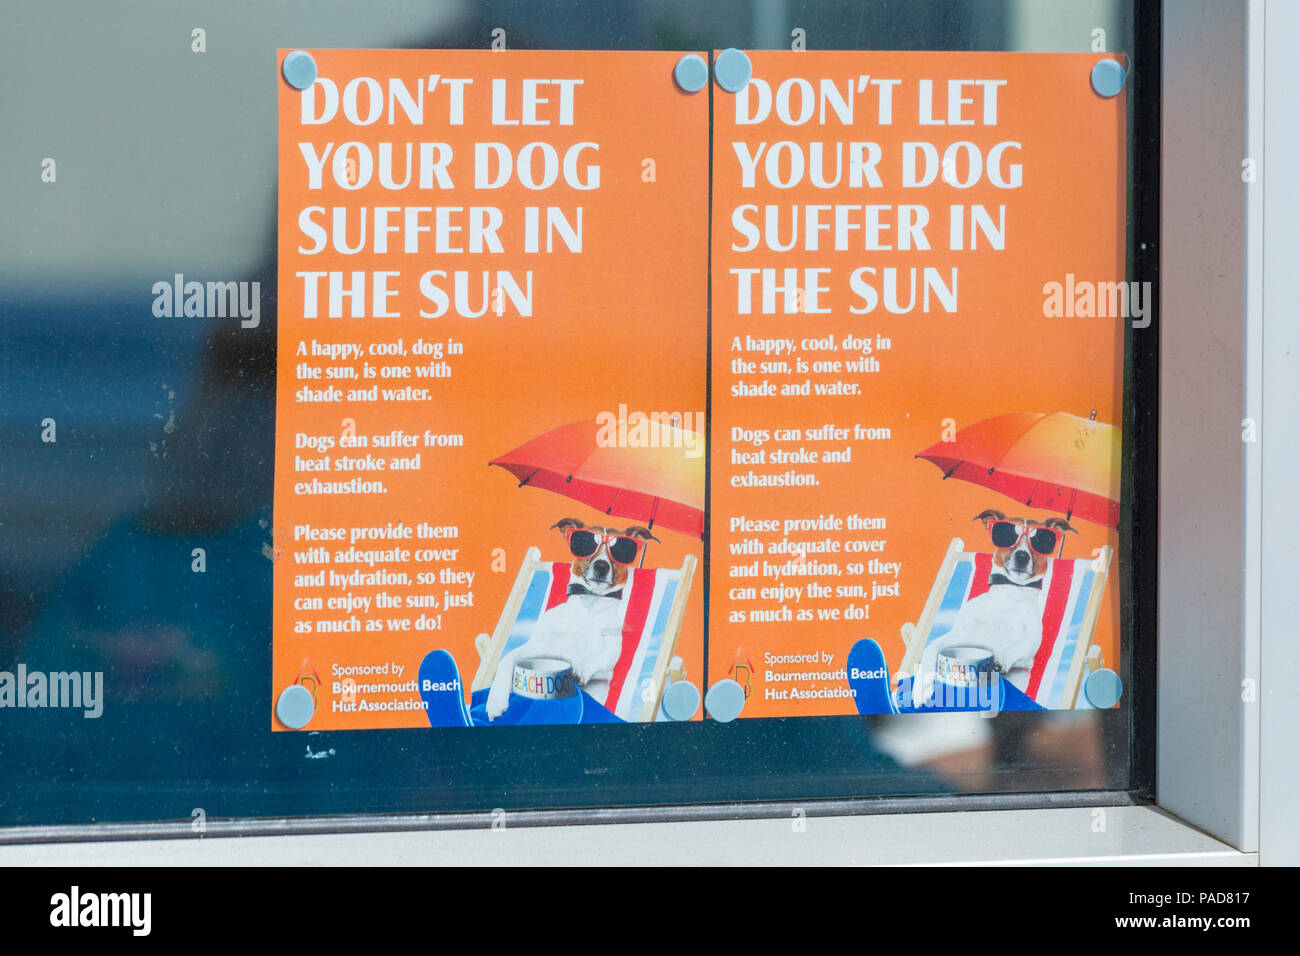 Bournemouth, Dorset, UK. 22nd July 2018. UK weather: hot and sunny at Bournemouth beaches, as sunseekers head to the seaside to soak up the sun. Don't let your dog suffer in the sun posters on display on Bournemouth Pier. Credit: Carolyn Jenkins/Alamy Live News - Stock Image